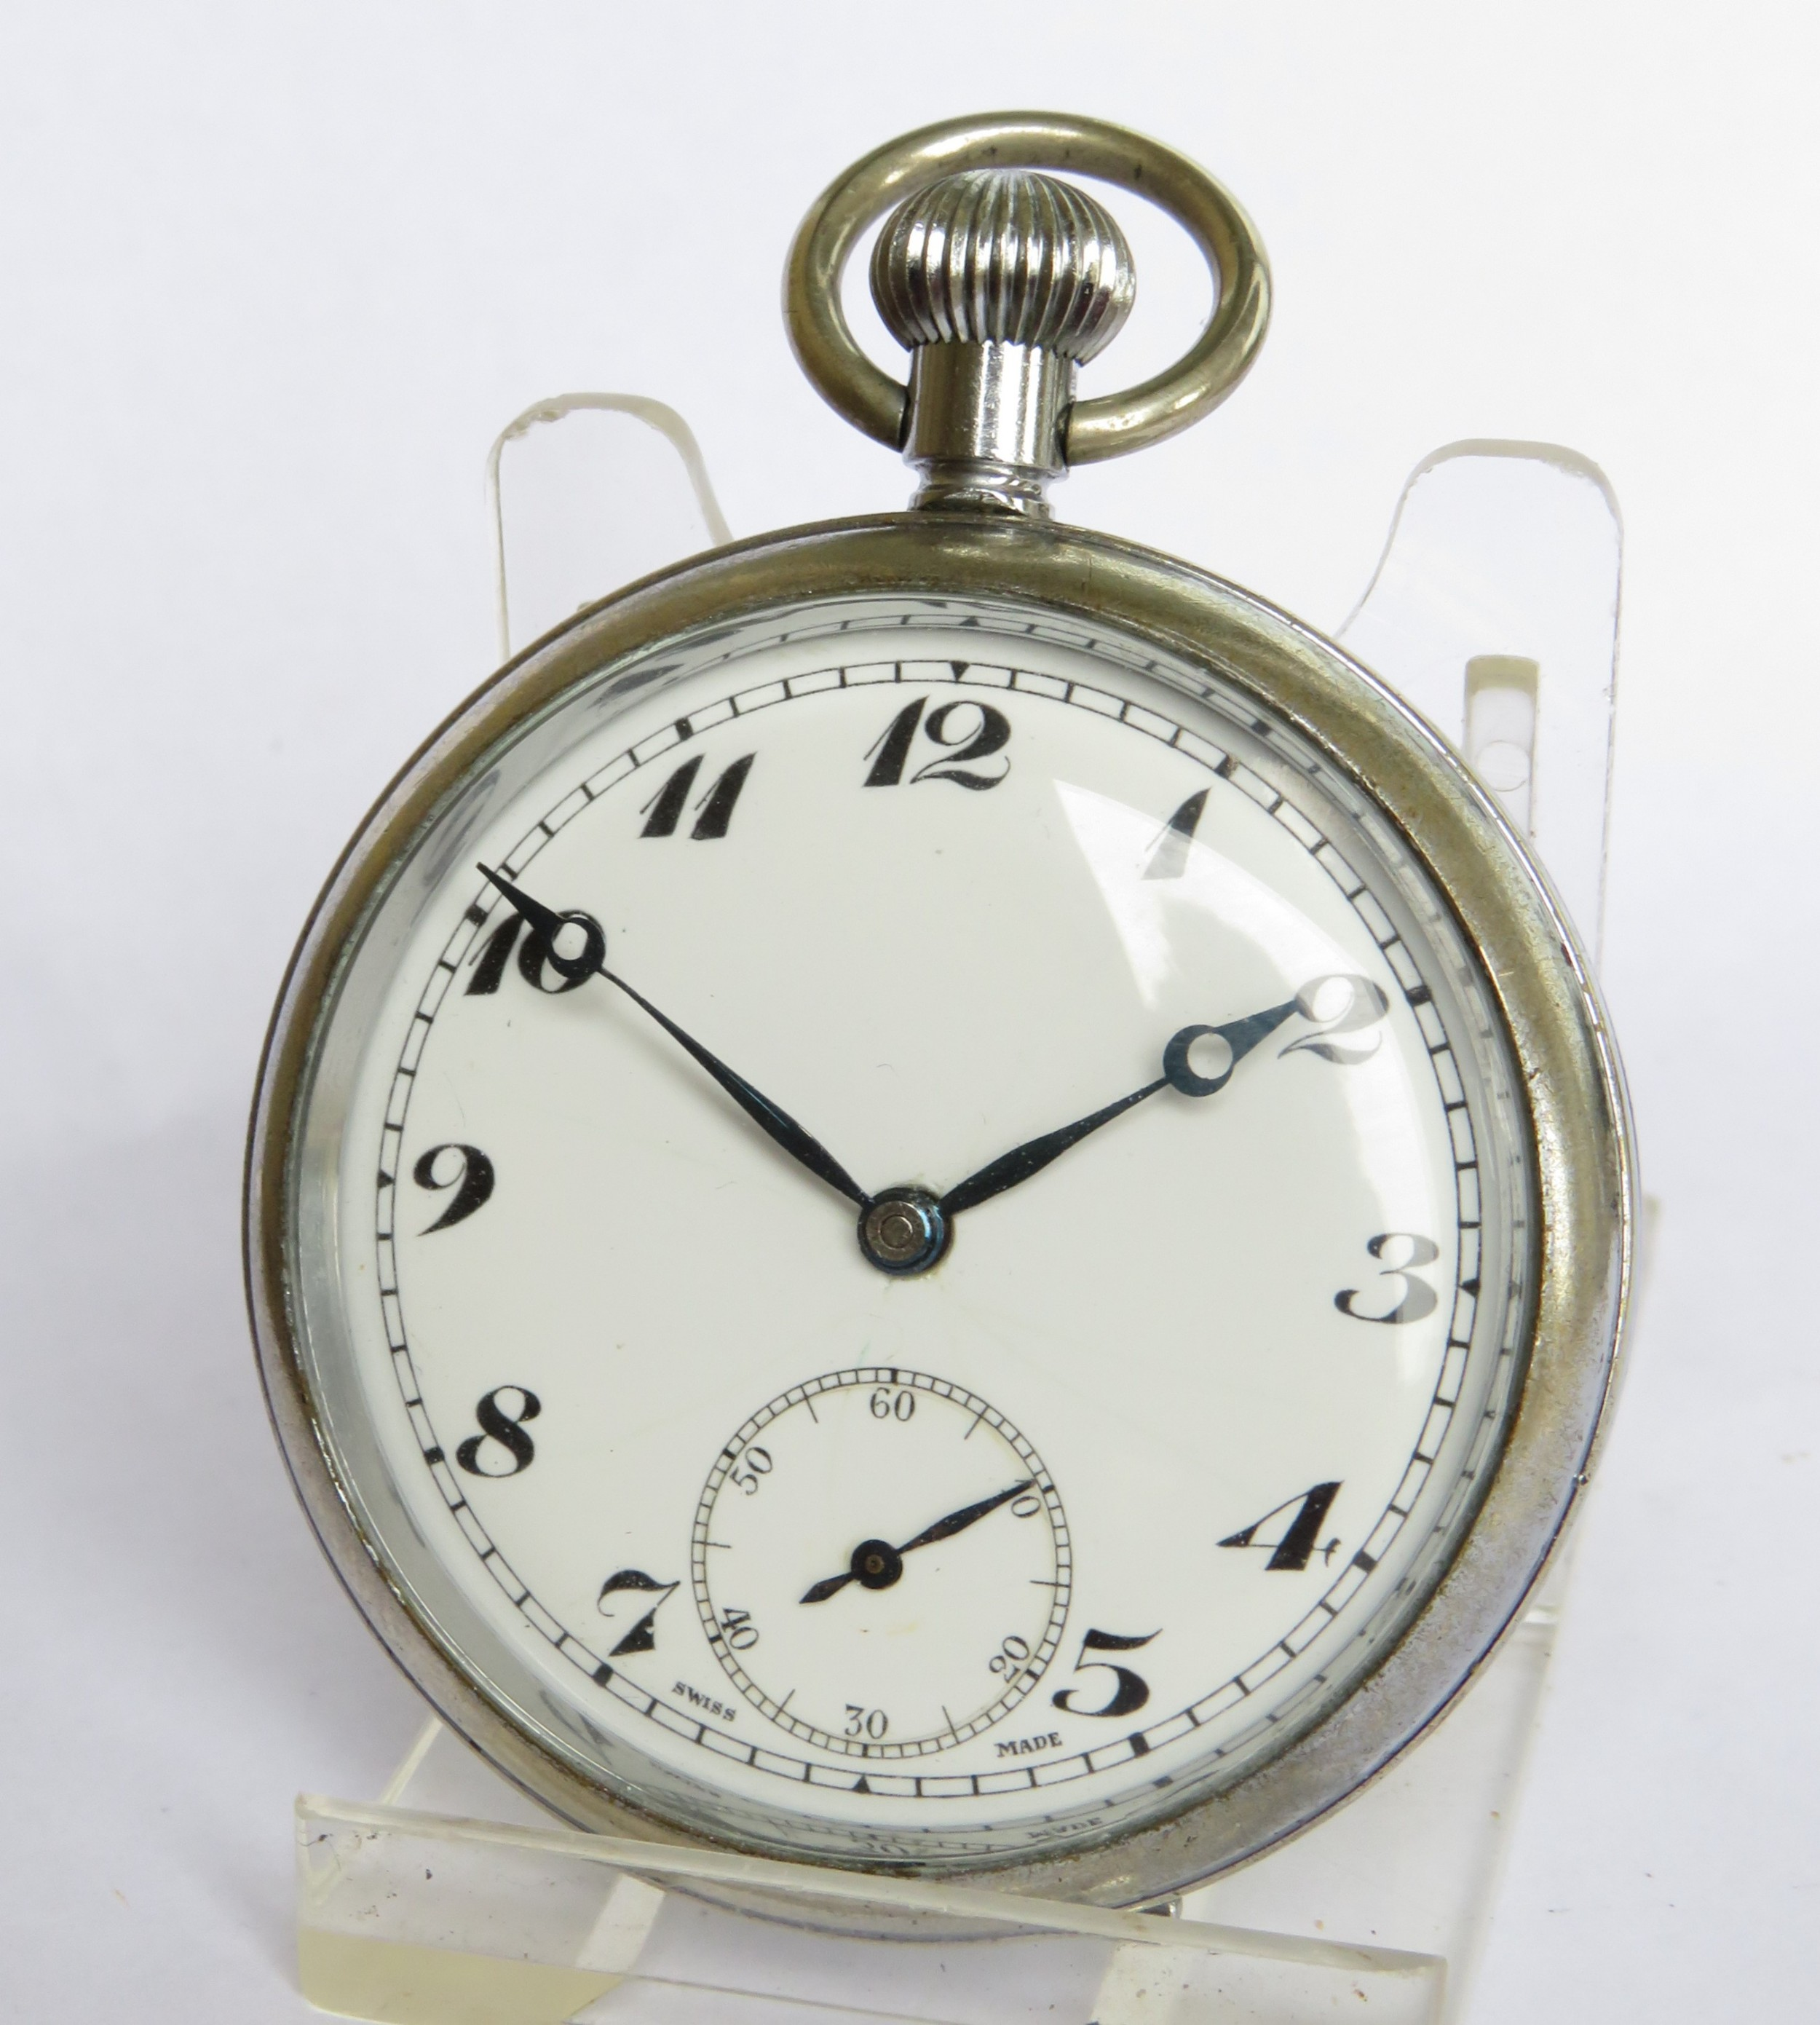 1930s helvetia kohinoor pocket watch